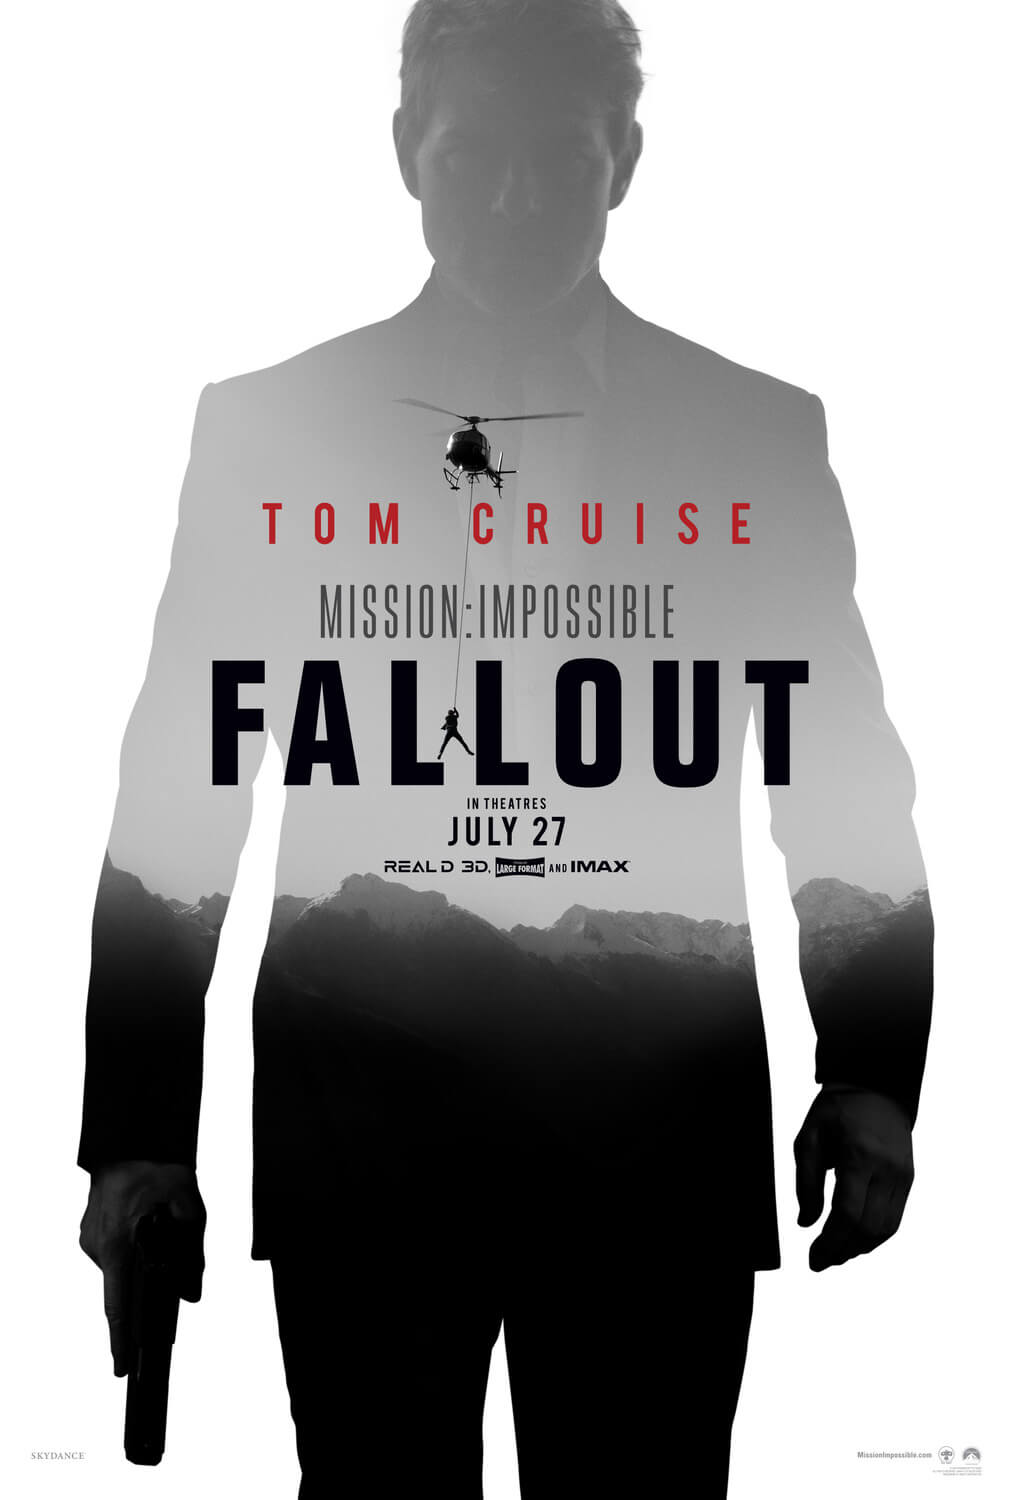 Tom Cruise's Mission Impossible Fallout is breaking records